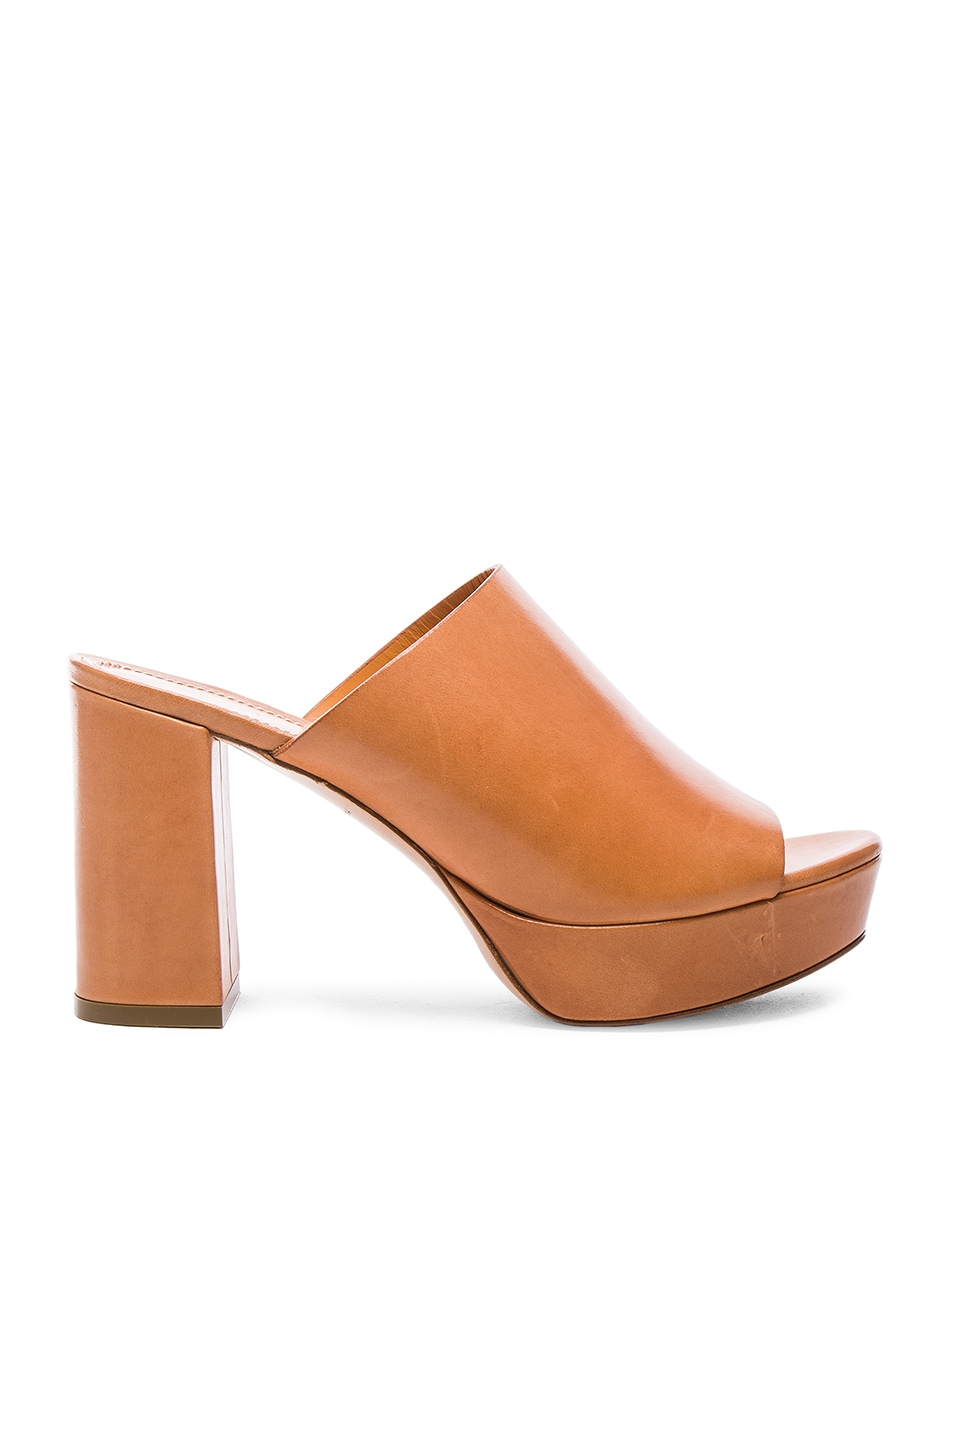 Image 1 of Mansur Gavriel Leather Mules in Cammelo